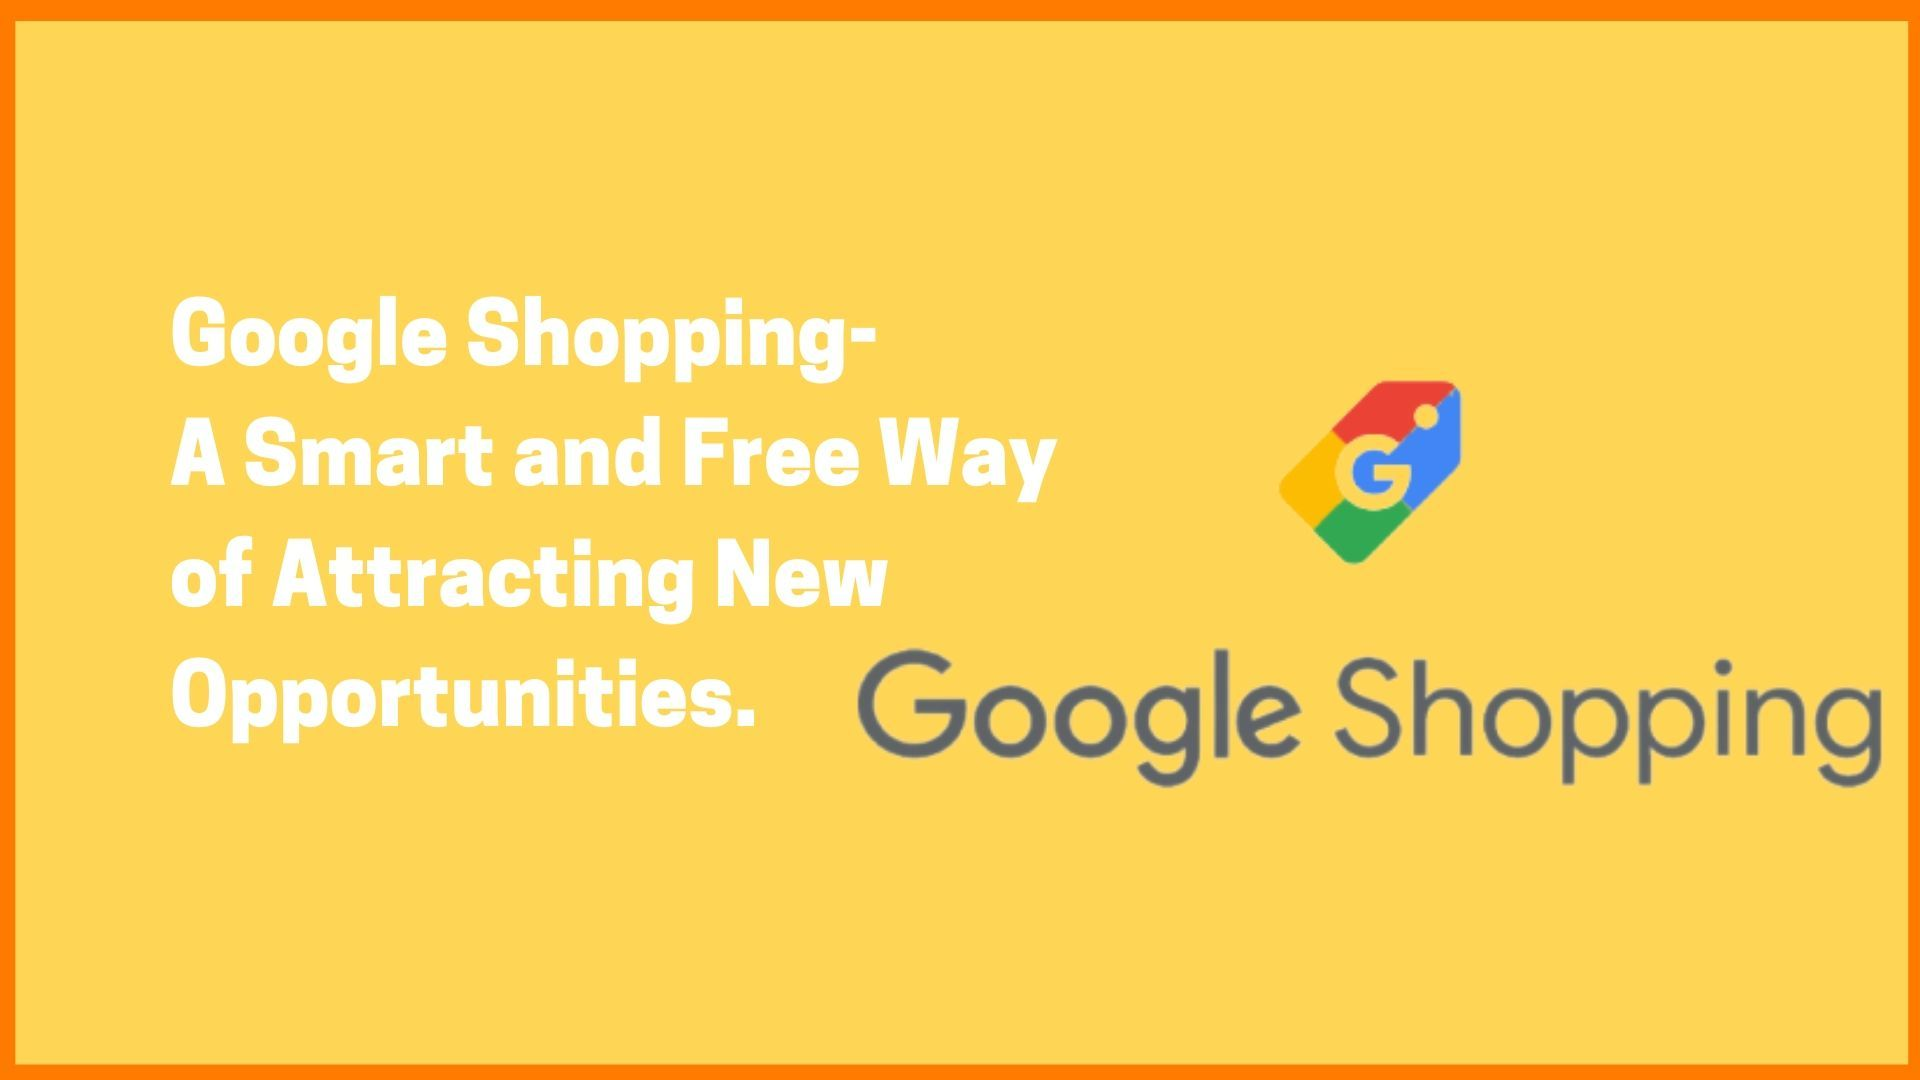 Google Shopping- A Smart and Free Way of Attracting New Opportunities.